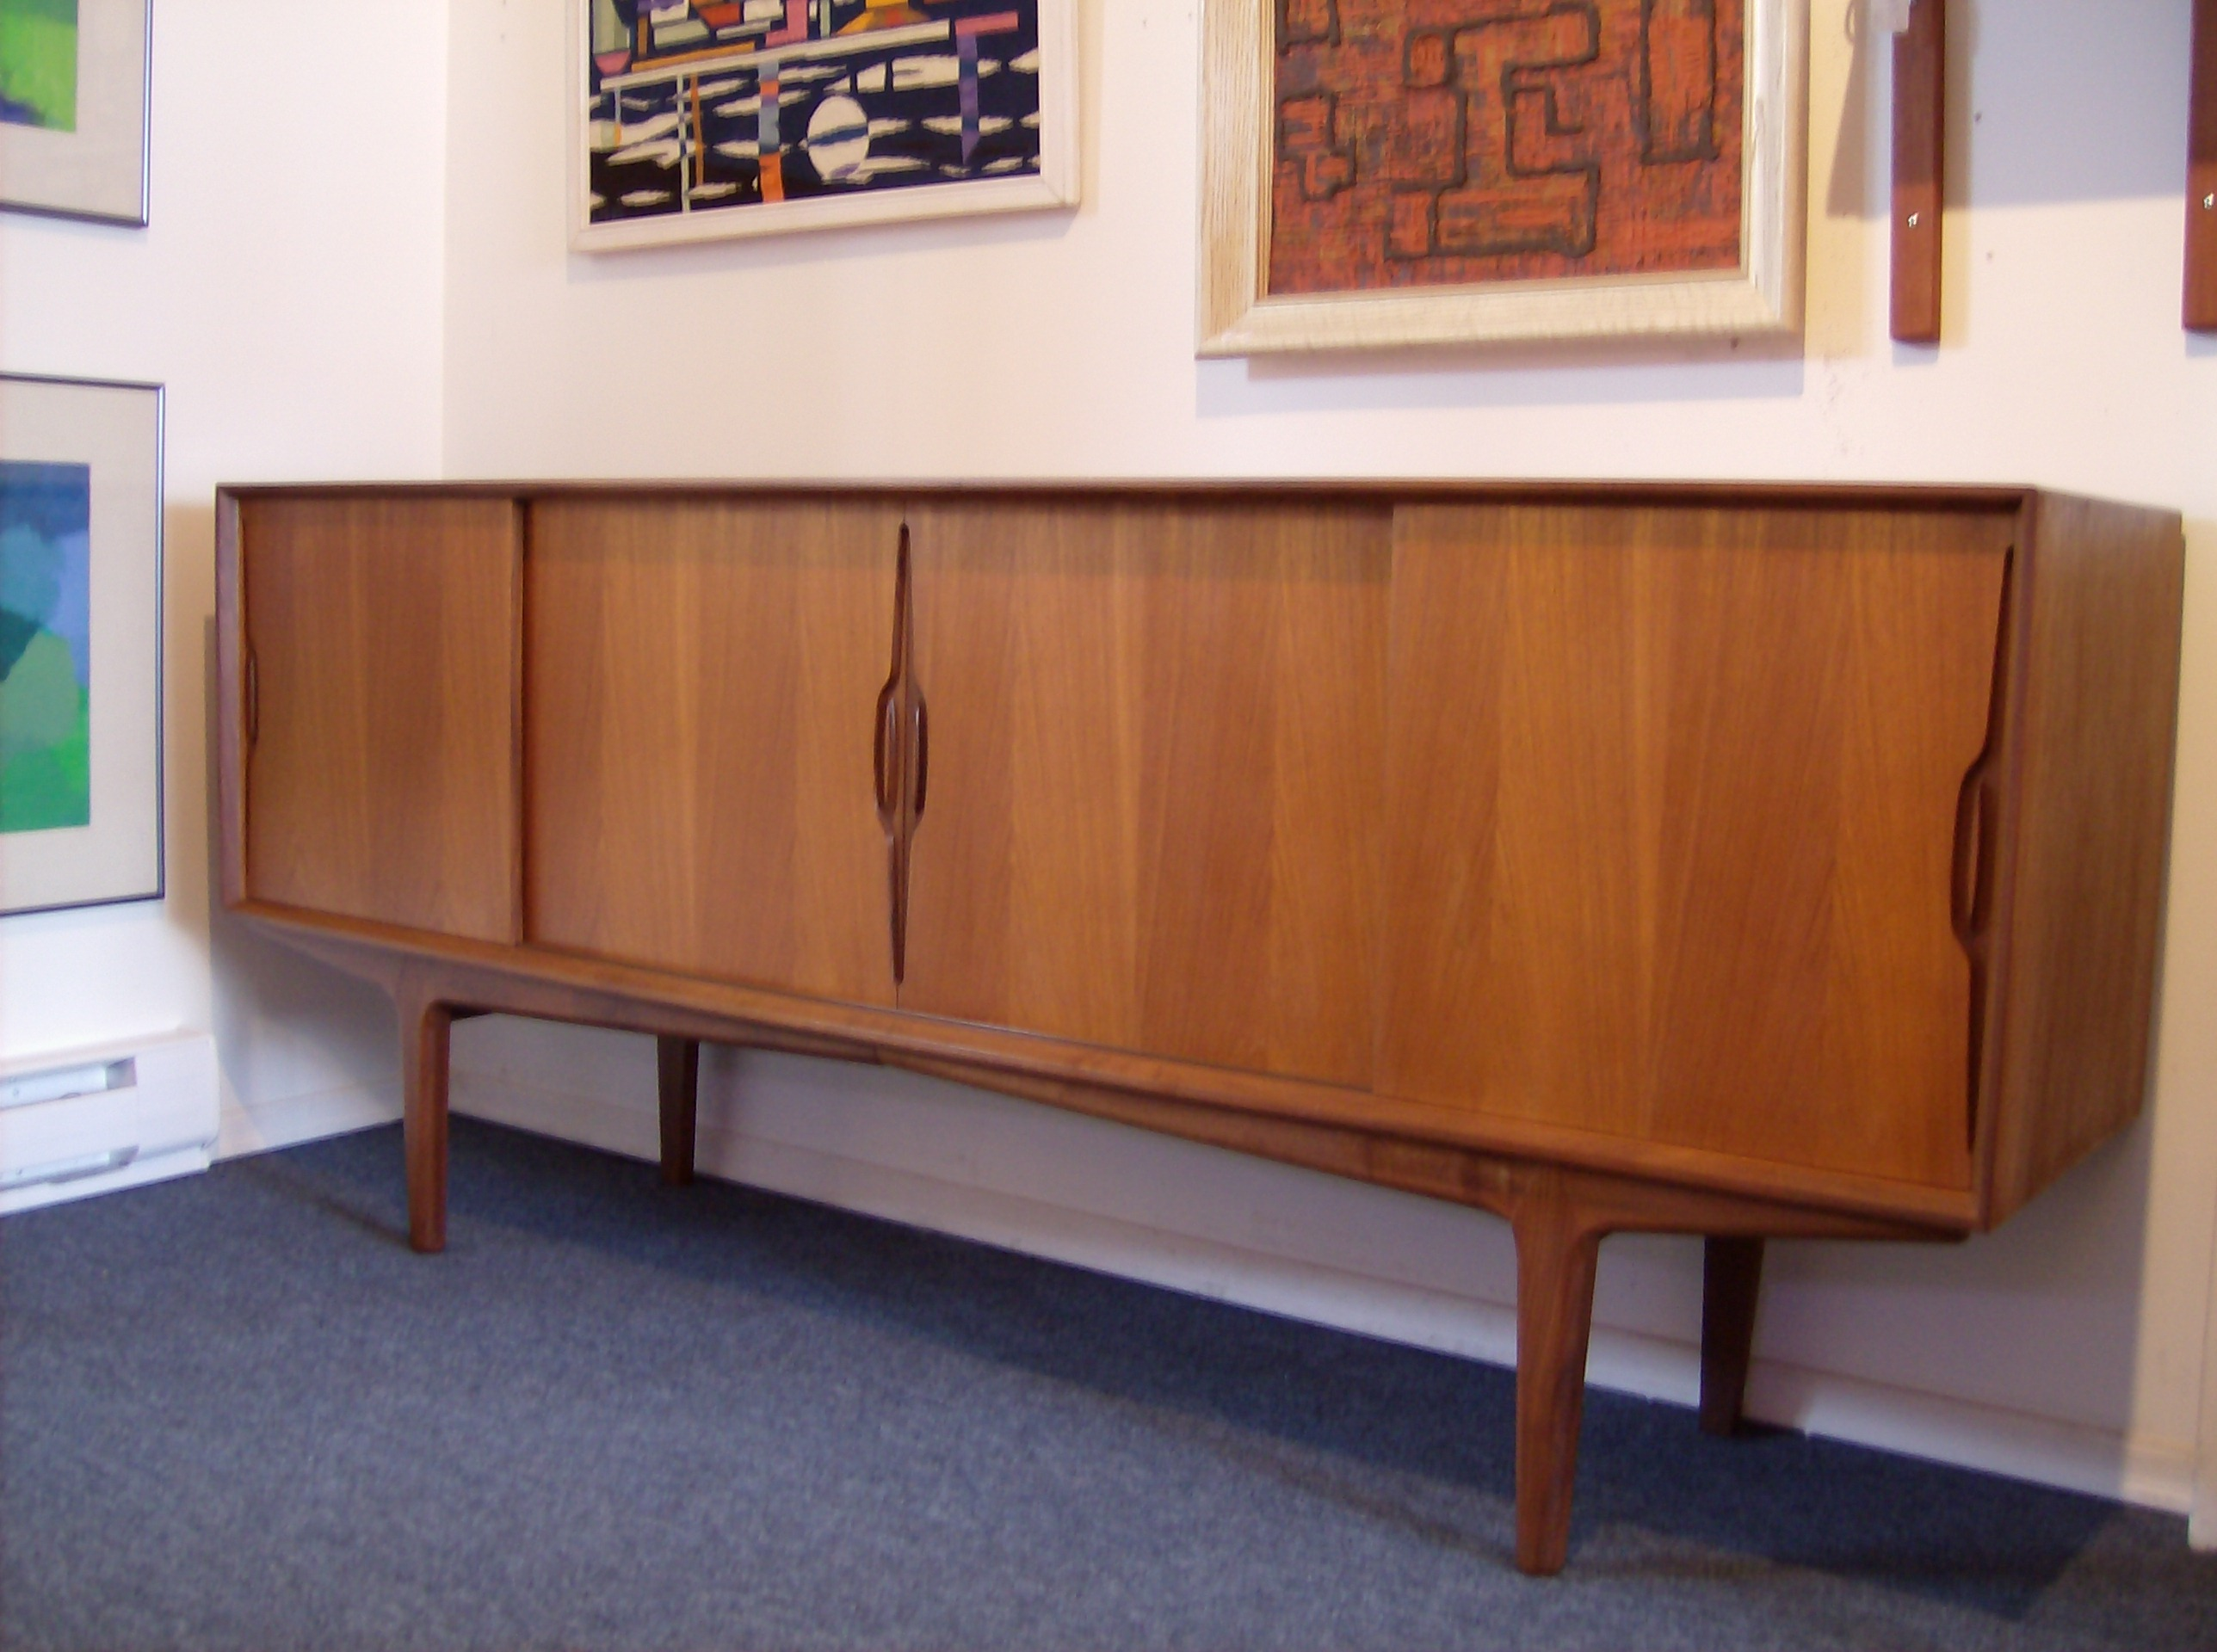 The fabulous find mid century modern furniture showroom for New mid century modern furniture